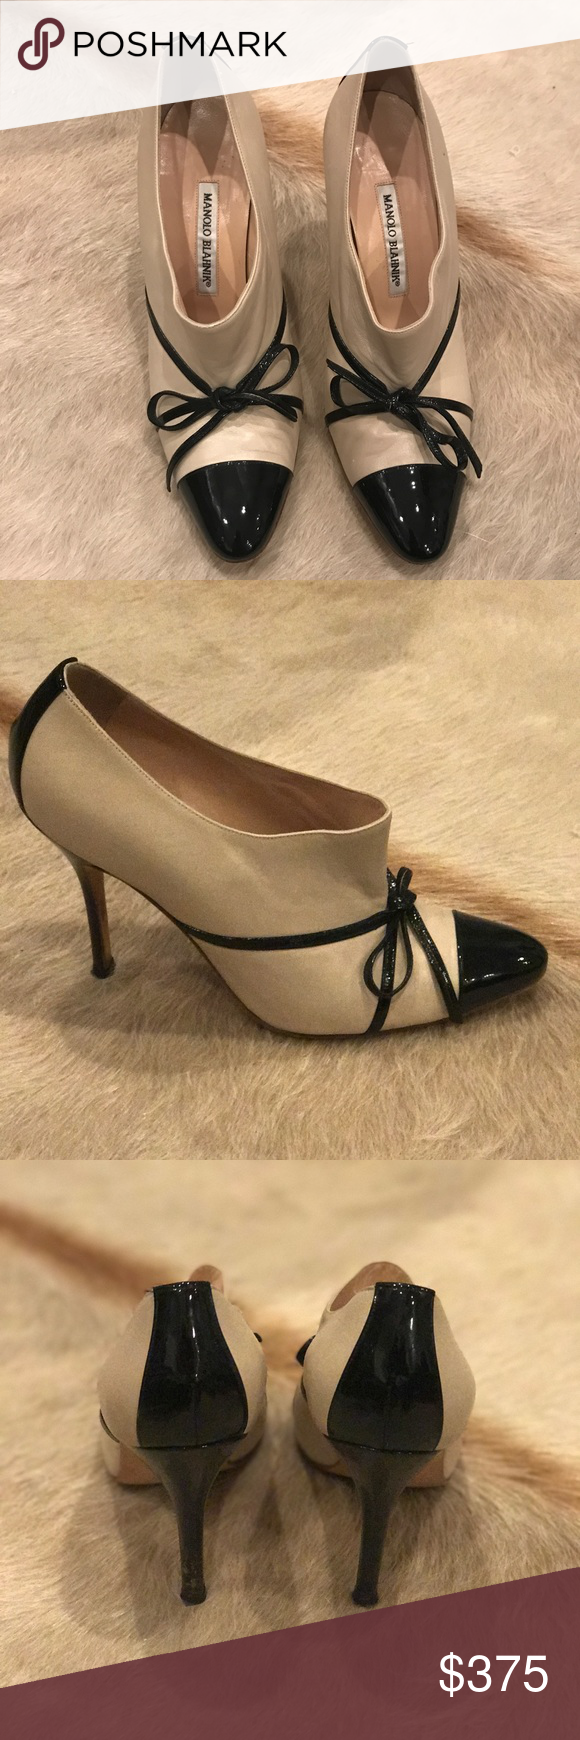 85f2af9fed79d Manolo Blahnik classic nude and black mule pumps Gently worn. Nude leather  with black patent toe. Fit like size US 7.5 Manolo Blahnik Shoes Heels